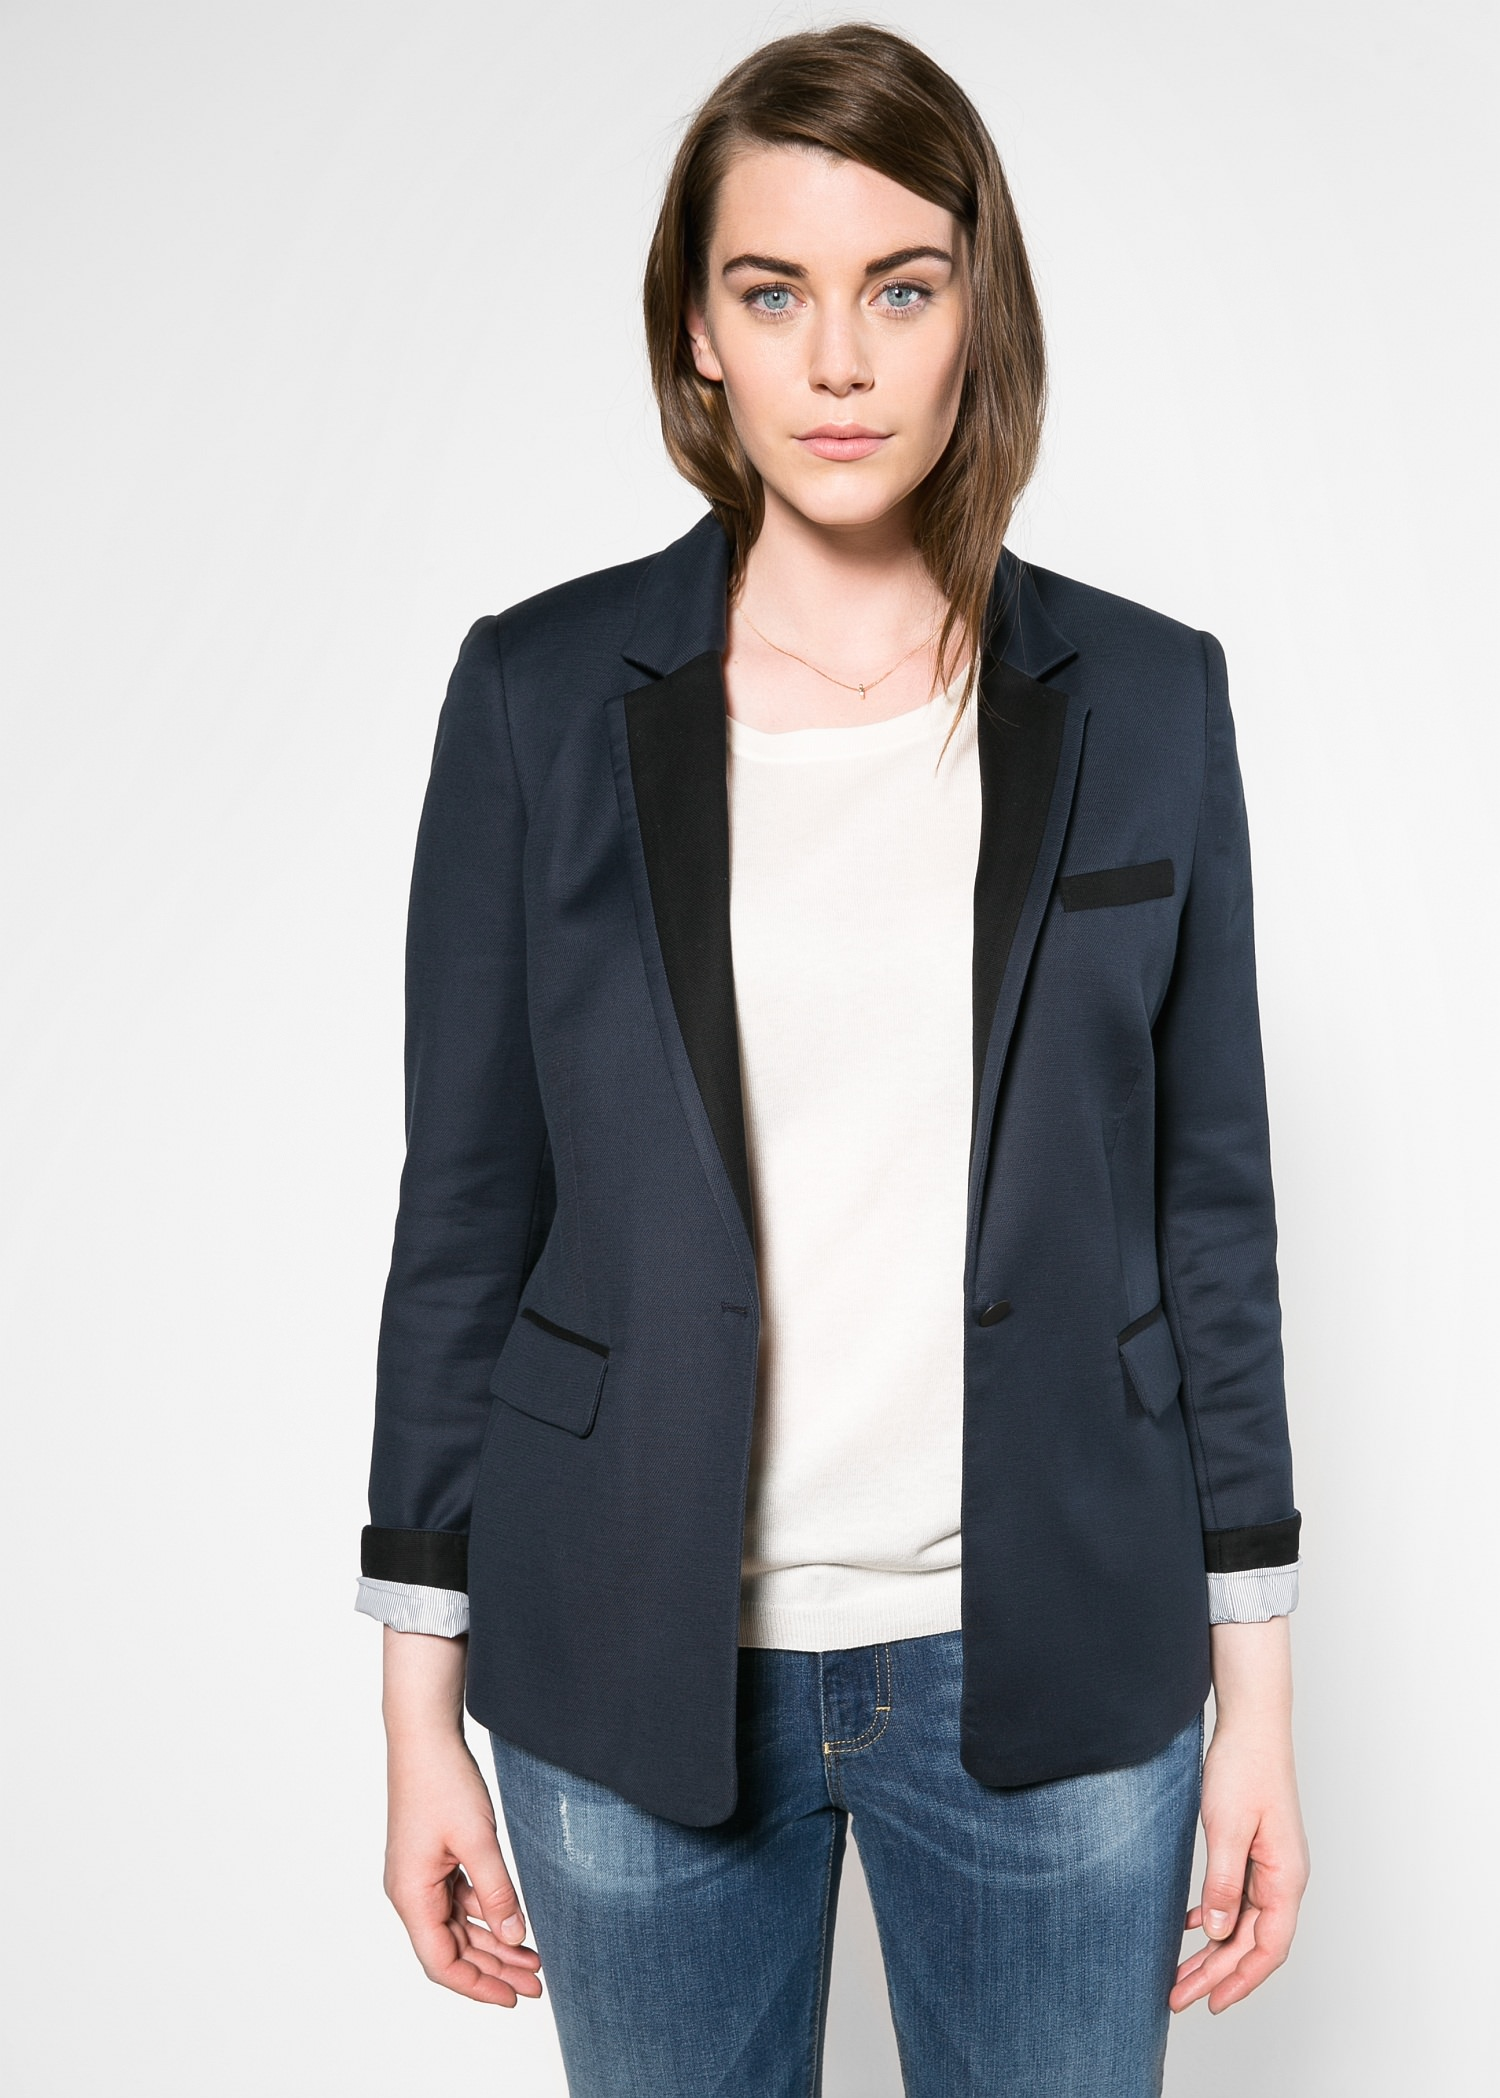 Bicolor structured blazer - Violeta | VIOLETA BY MANGO